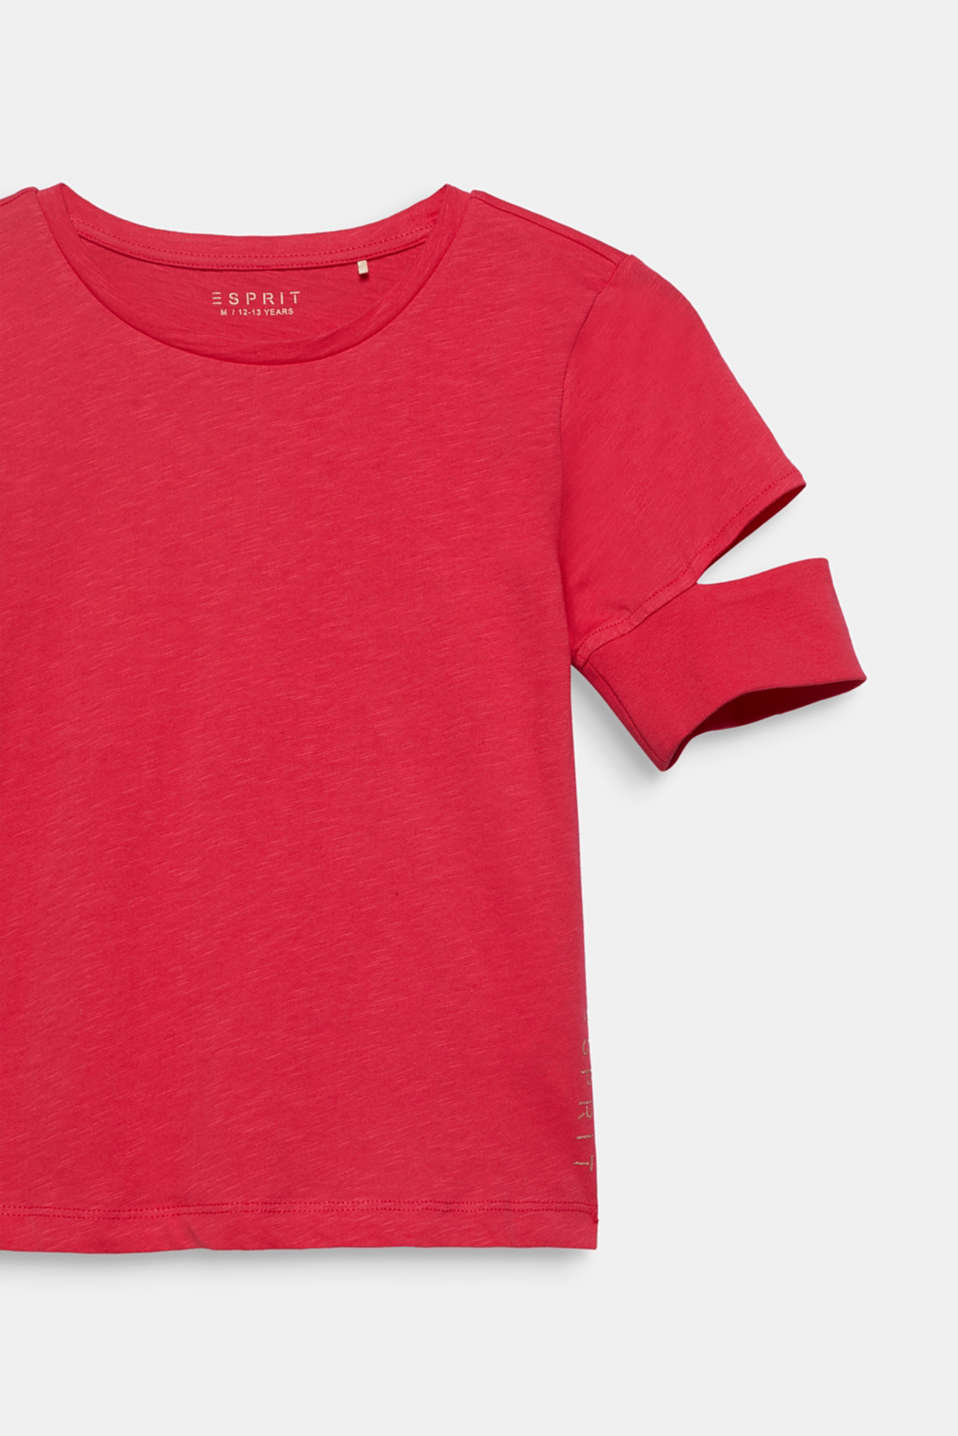 100% cotton slub T-shirt with cut-outs, LCRASPBERRY, detail image number 2